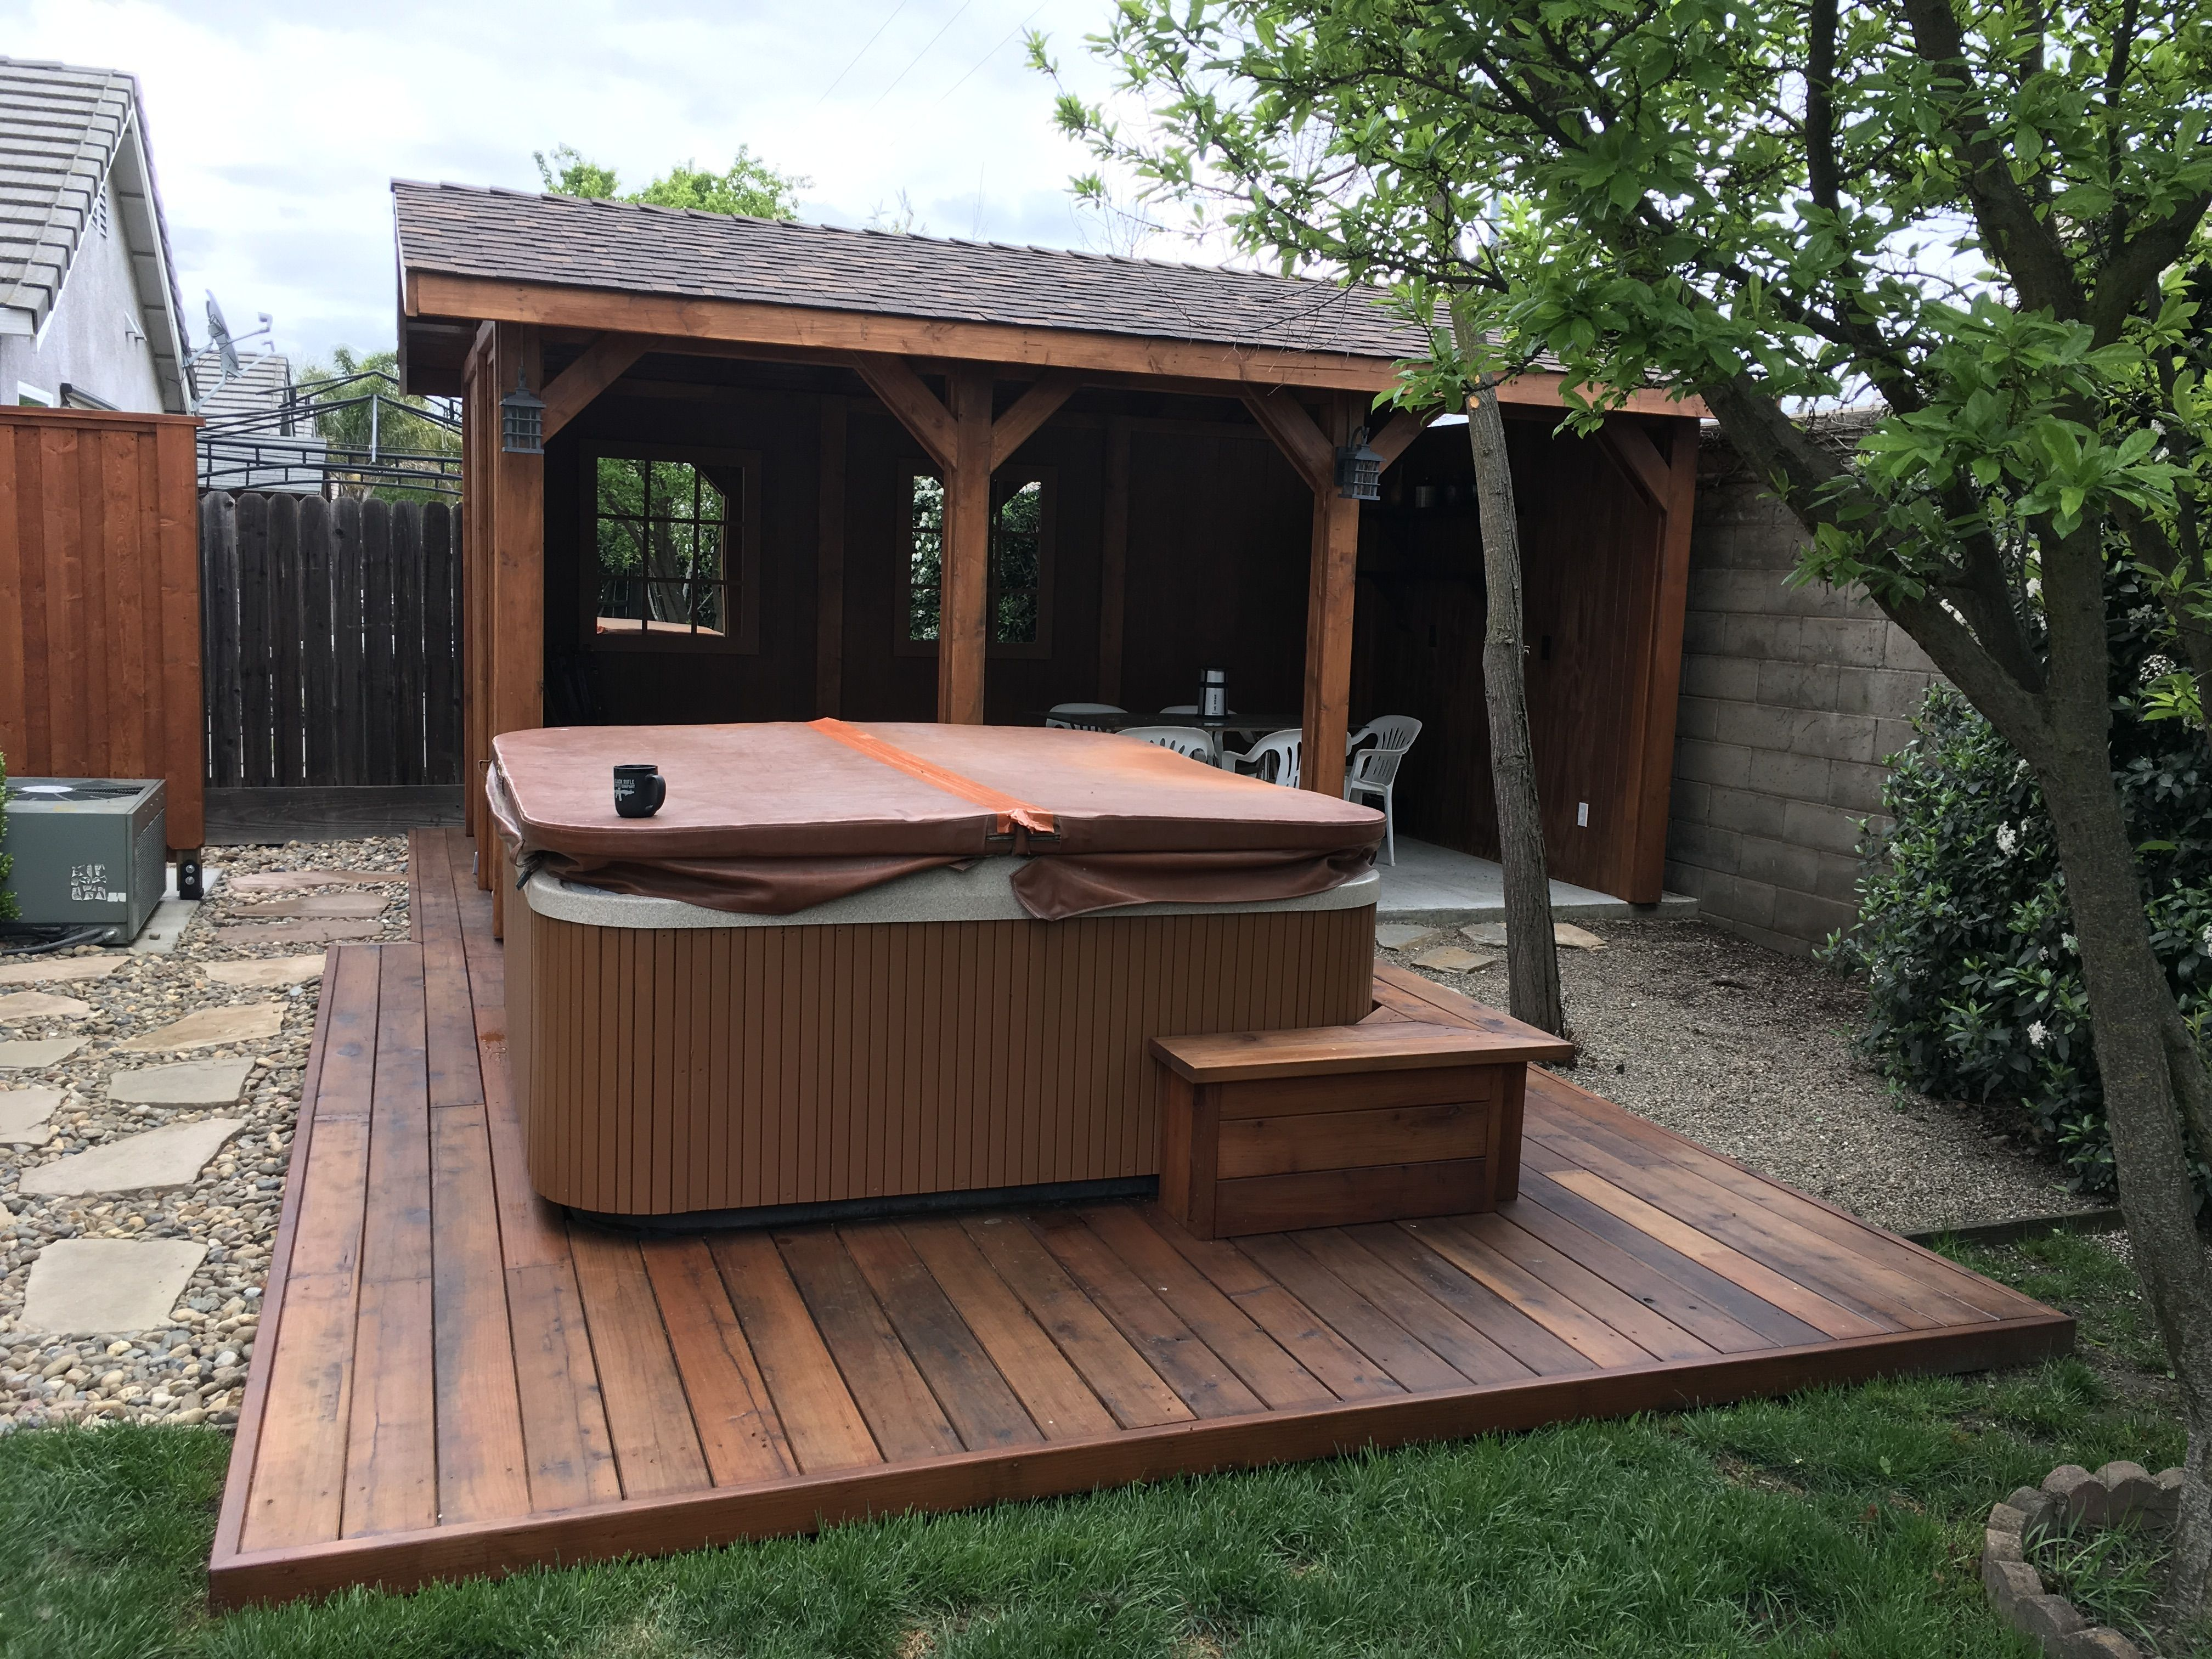 Indoor Deck Deck Spa Garden Patio Spa Garden Structure Ideas Pinterest Garden Structures Ideas Garden Patio